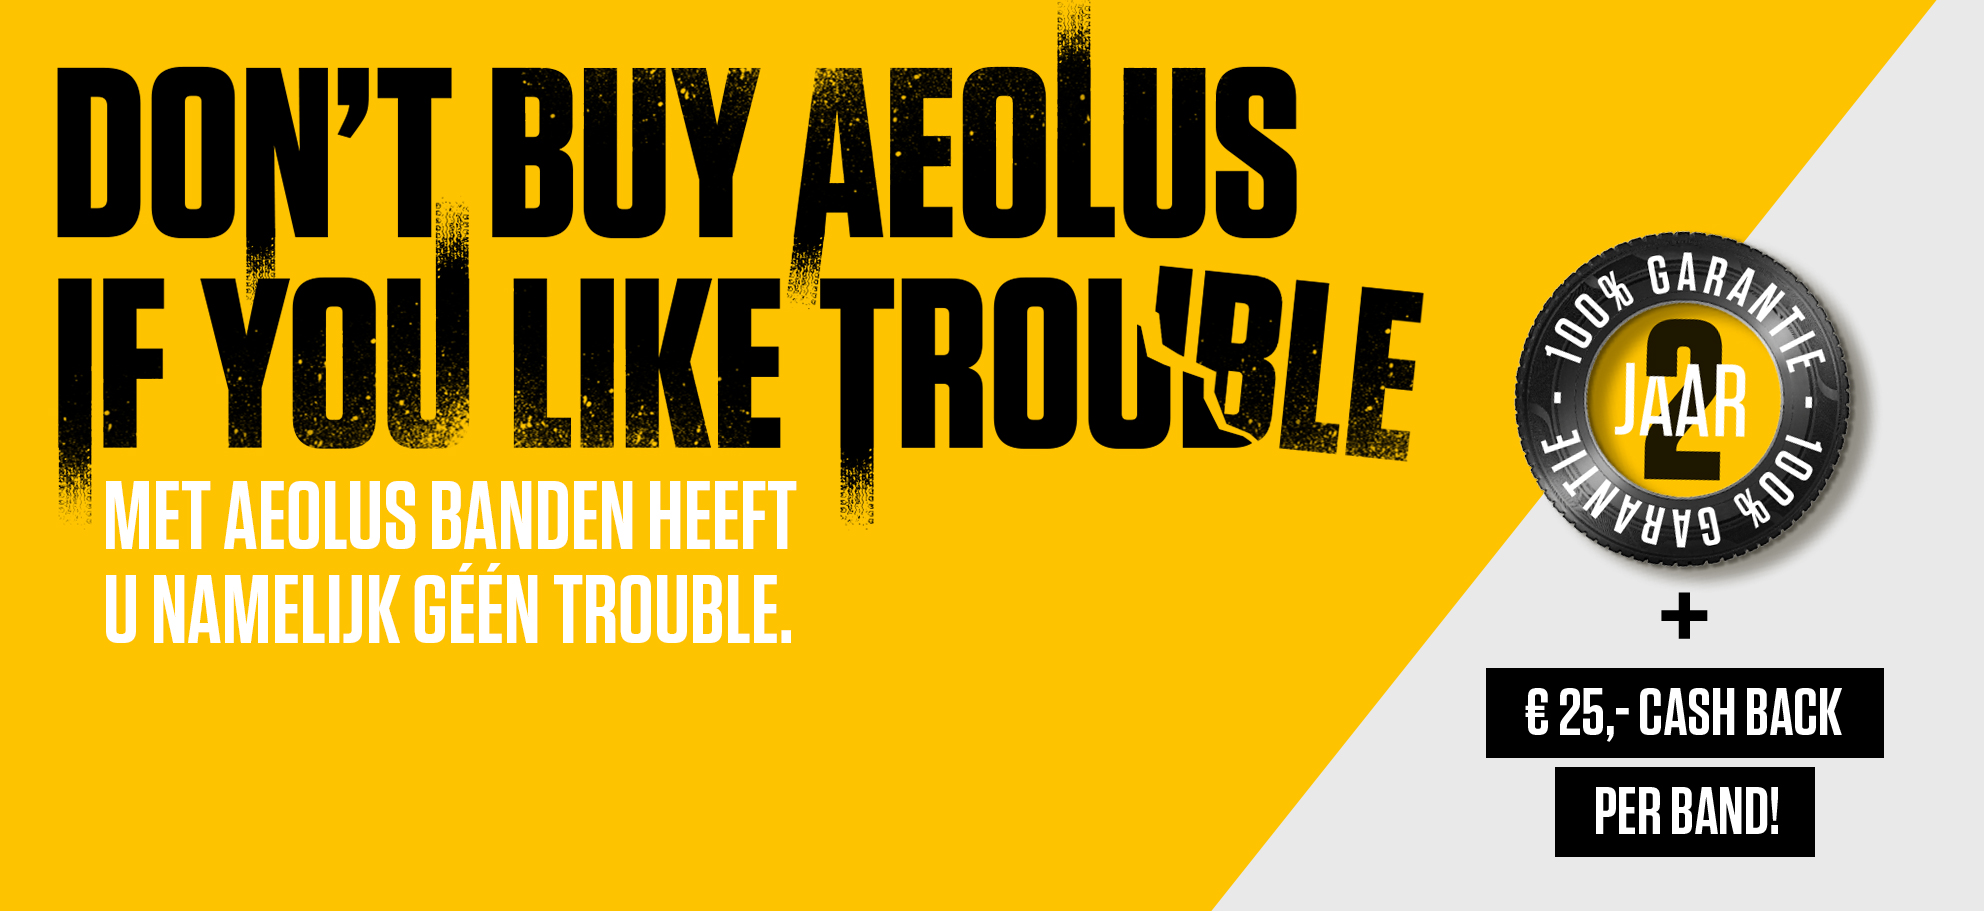 Don't buy Aeolus if you like trouble